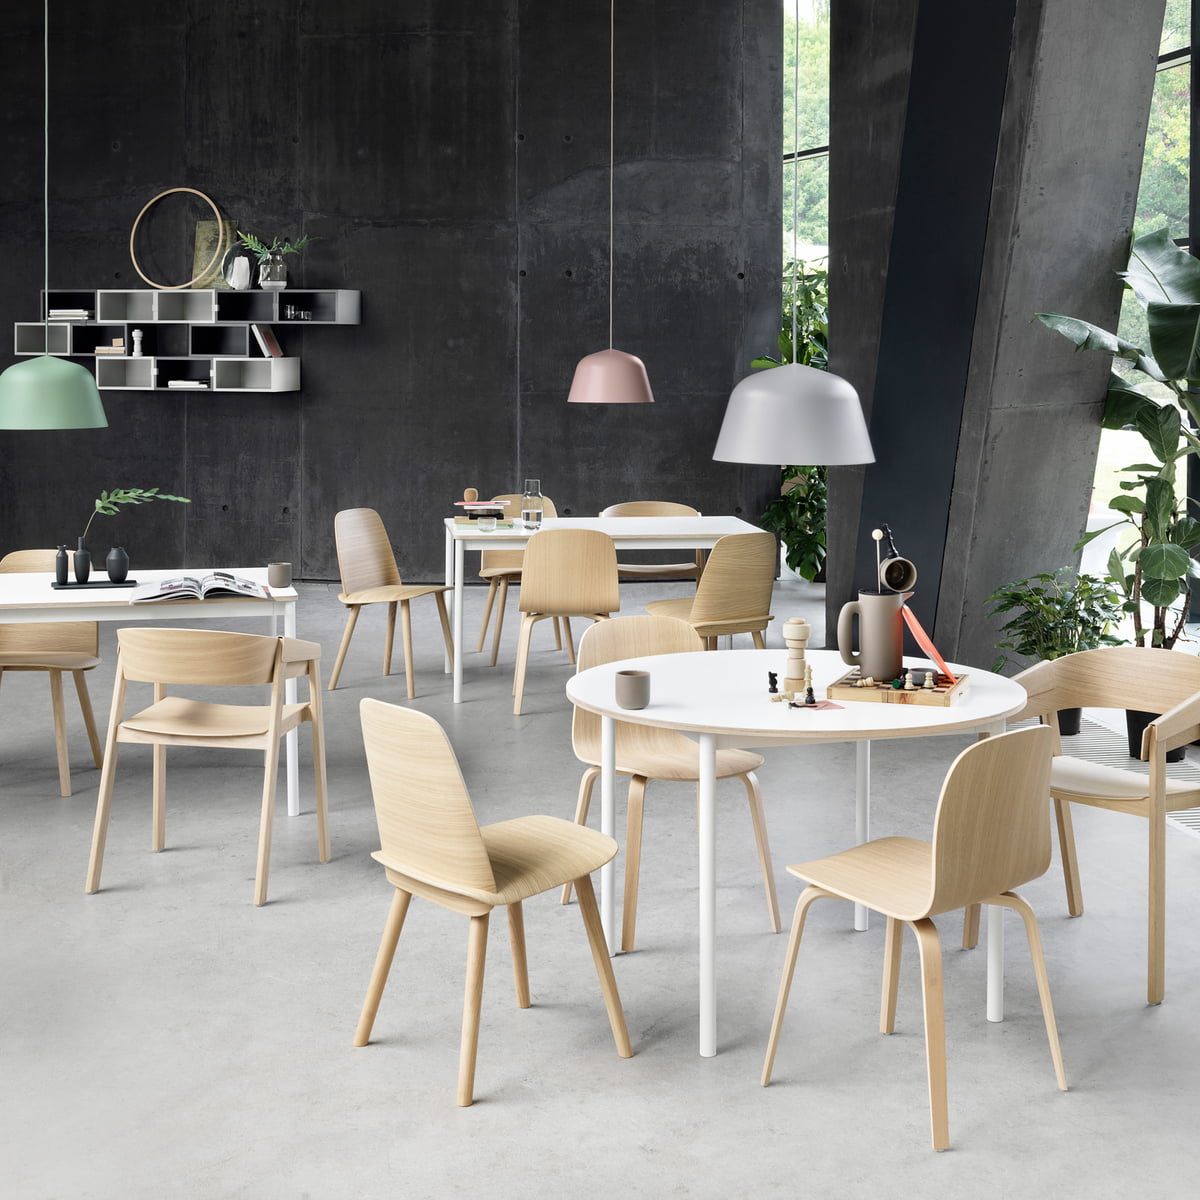 Muuto Base dining table with chairs The